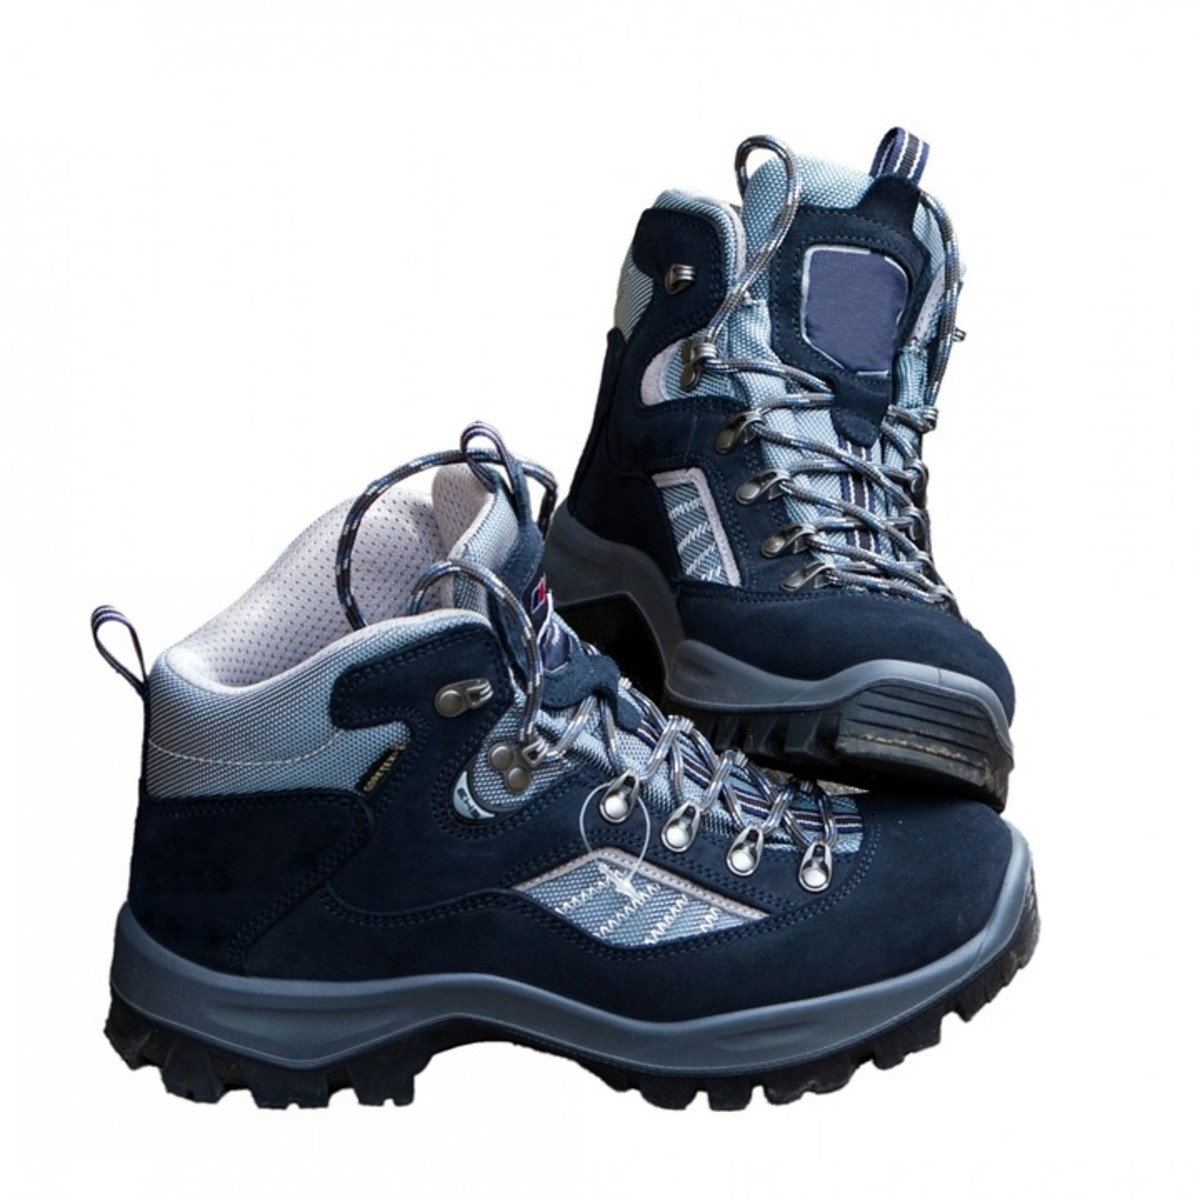 Middle-cut hiking boots